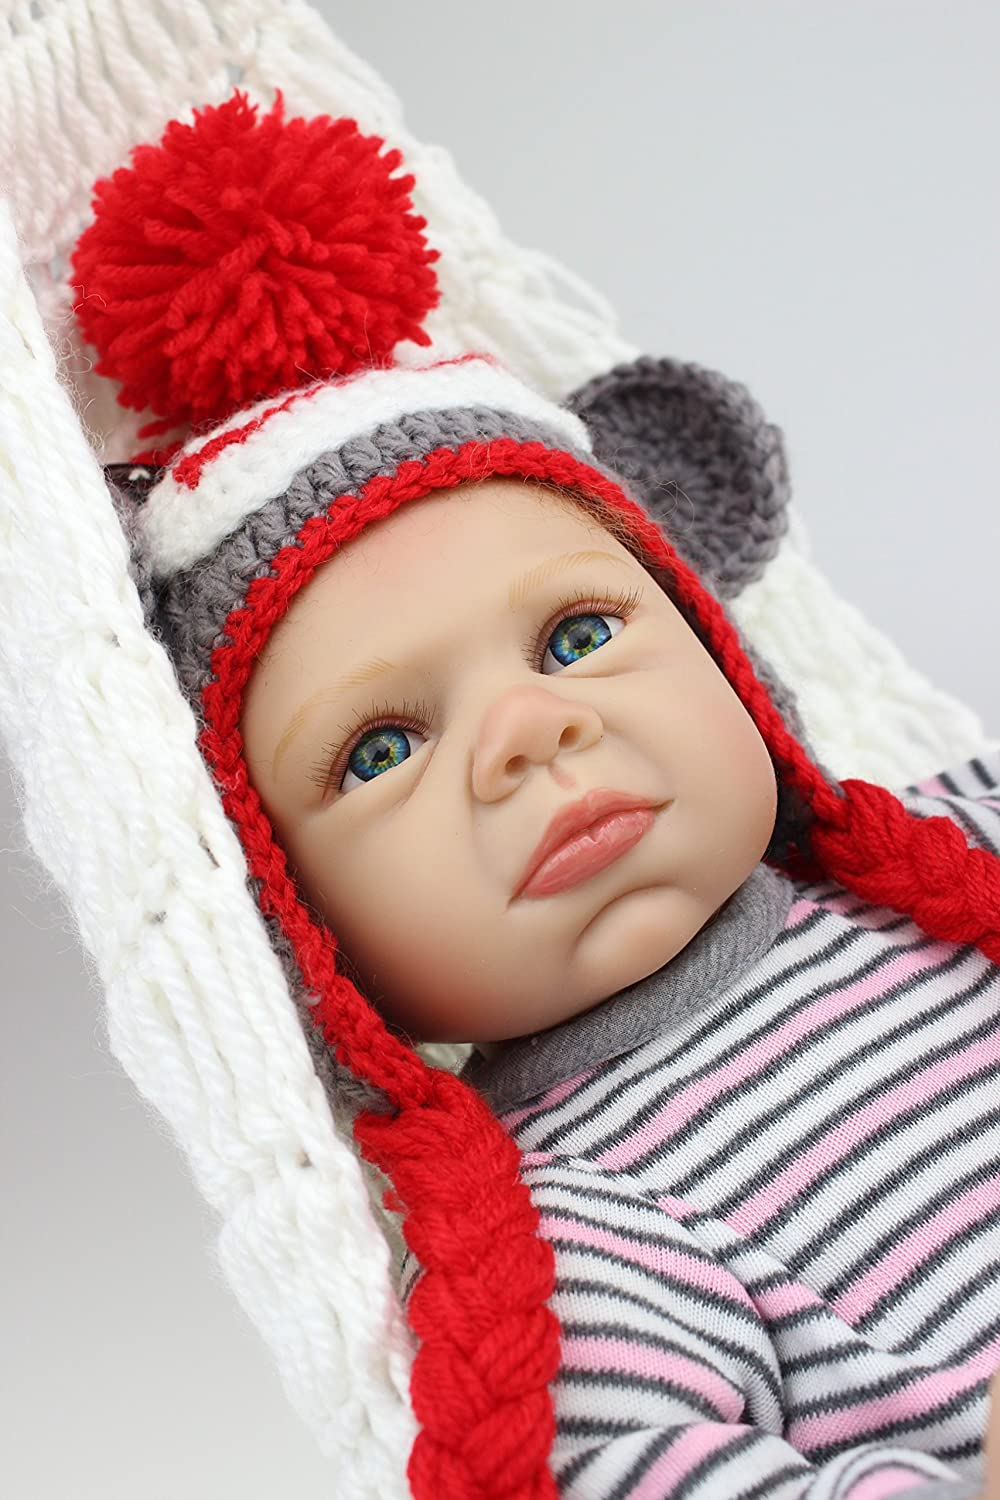 Lilith Rebornベビー人形22インチ55 cm Lovely Real Gentle Touch Lifelike Newborn Doll Girl Toddler Bed Time Toyギフト   B07DFJ8VDH